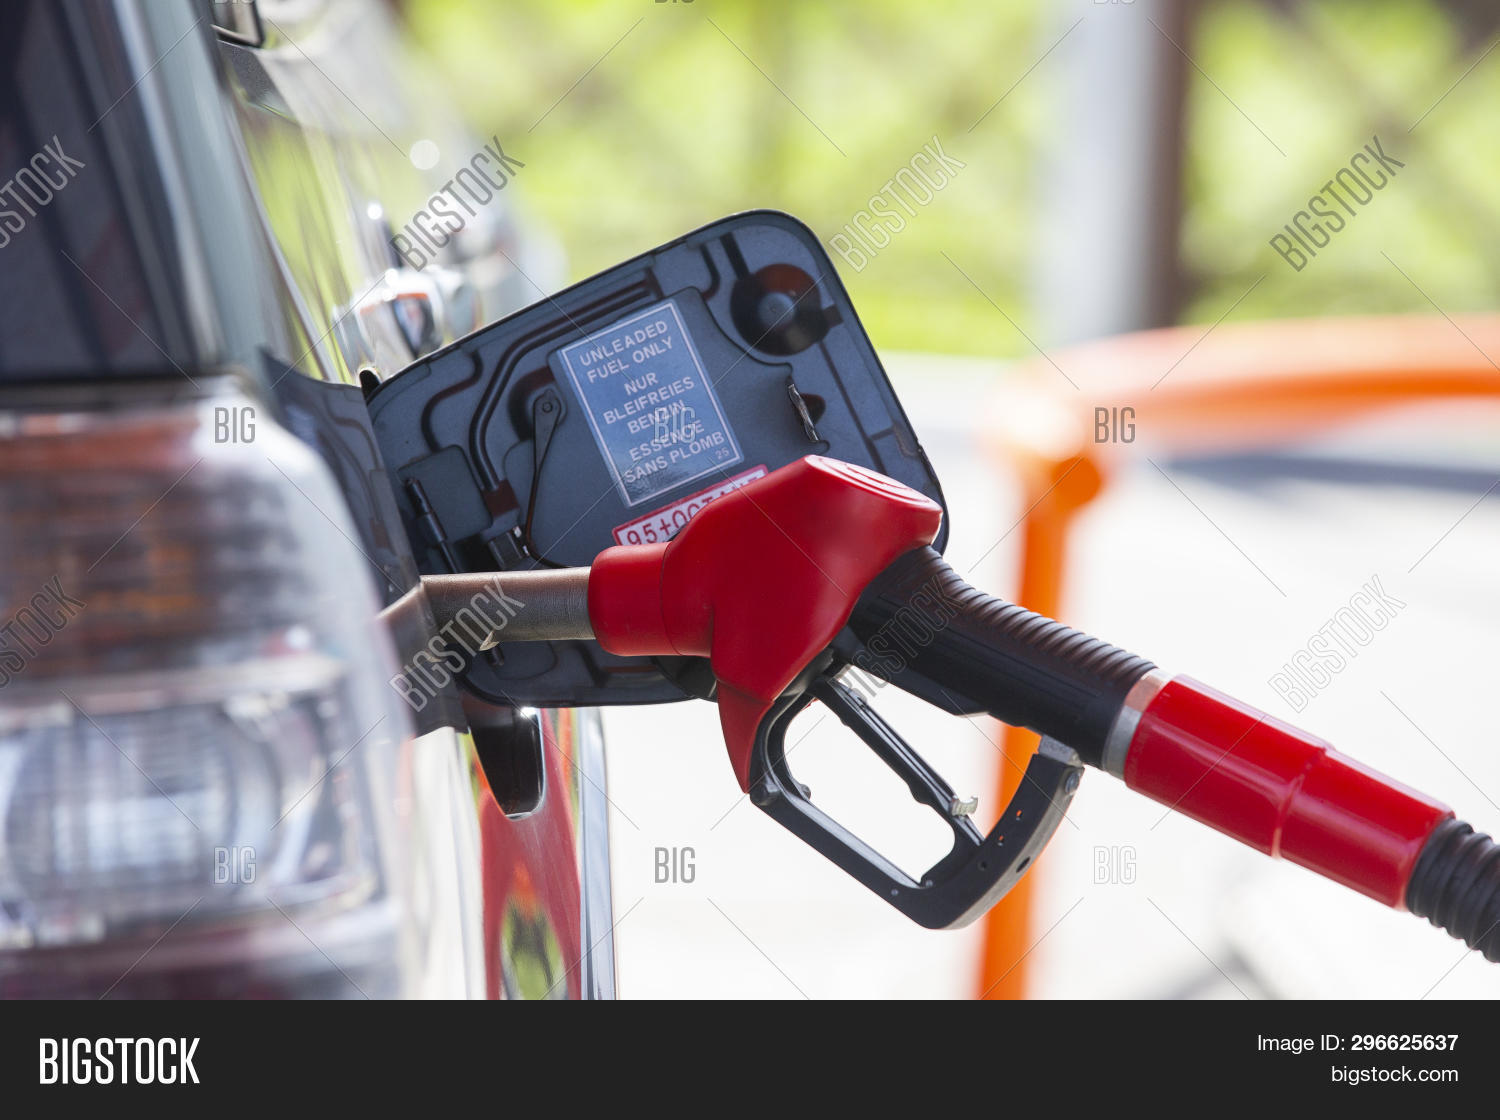 Navigate To The Closest Gas Station >> Fill Car Fuel Car Image Photo Free Trial Bigstock